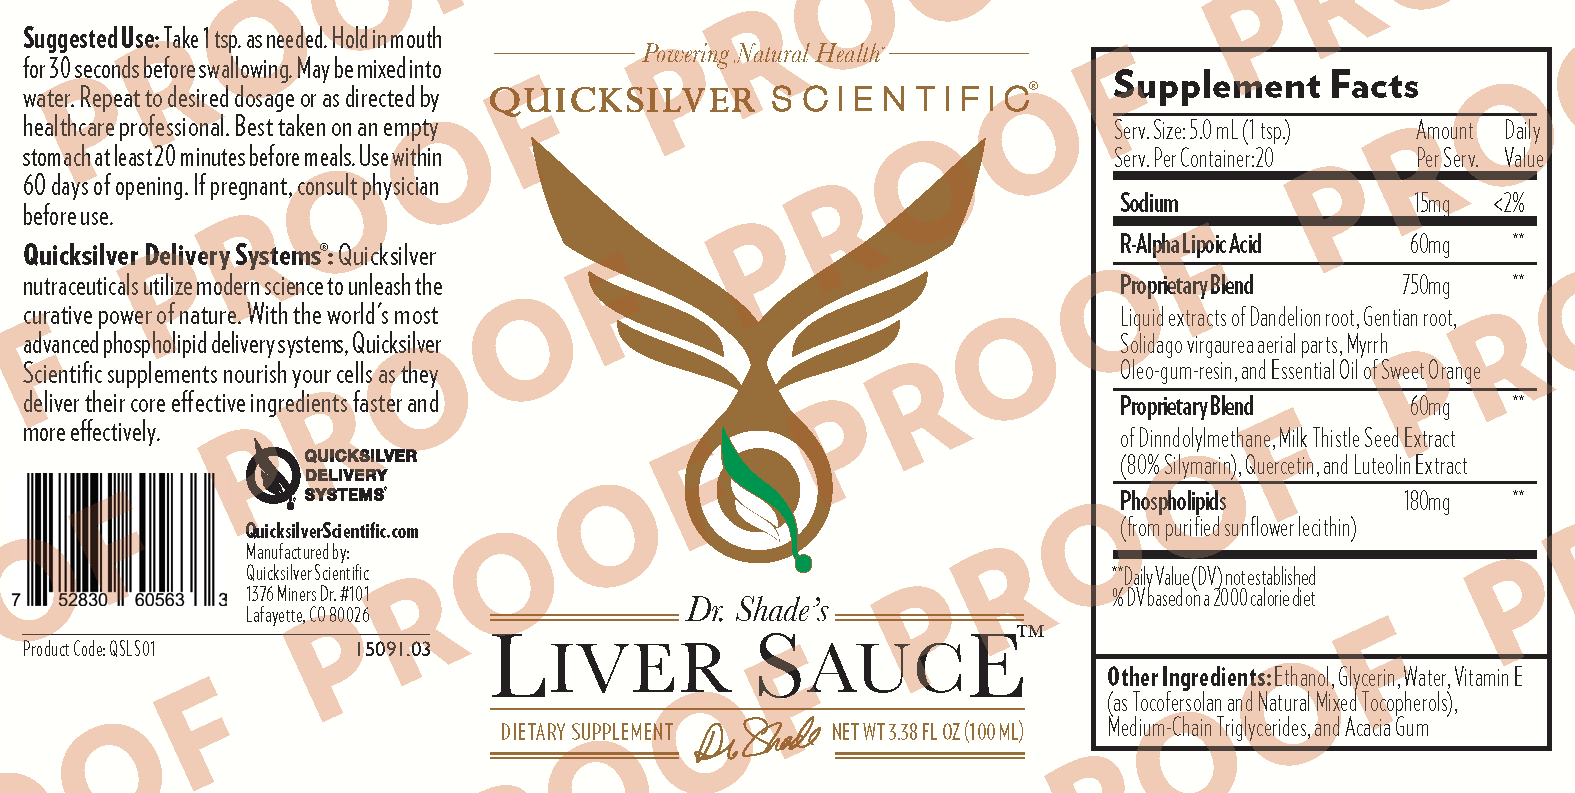 Liver Sauce 100ml Herbal Line 1509103 Colloidal Silver 250/500/1000/2000 ppm